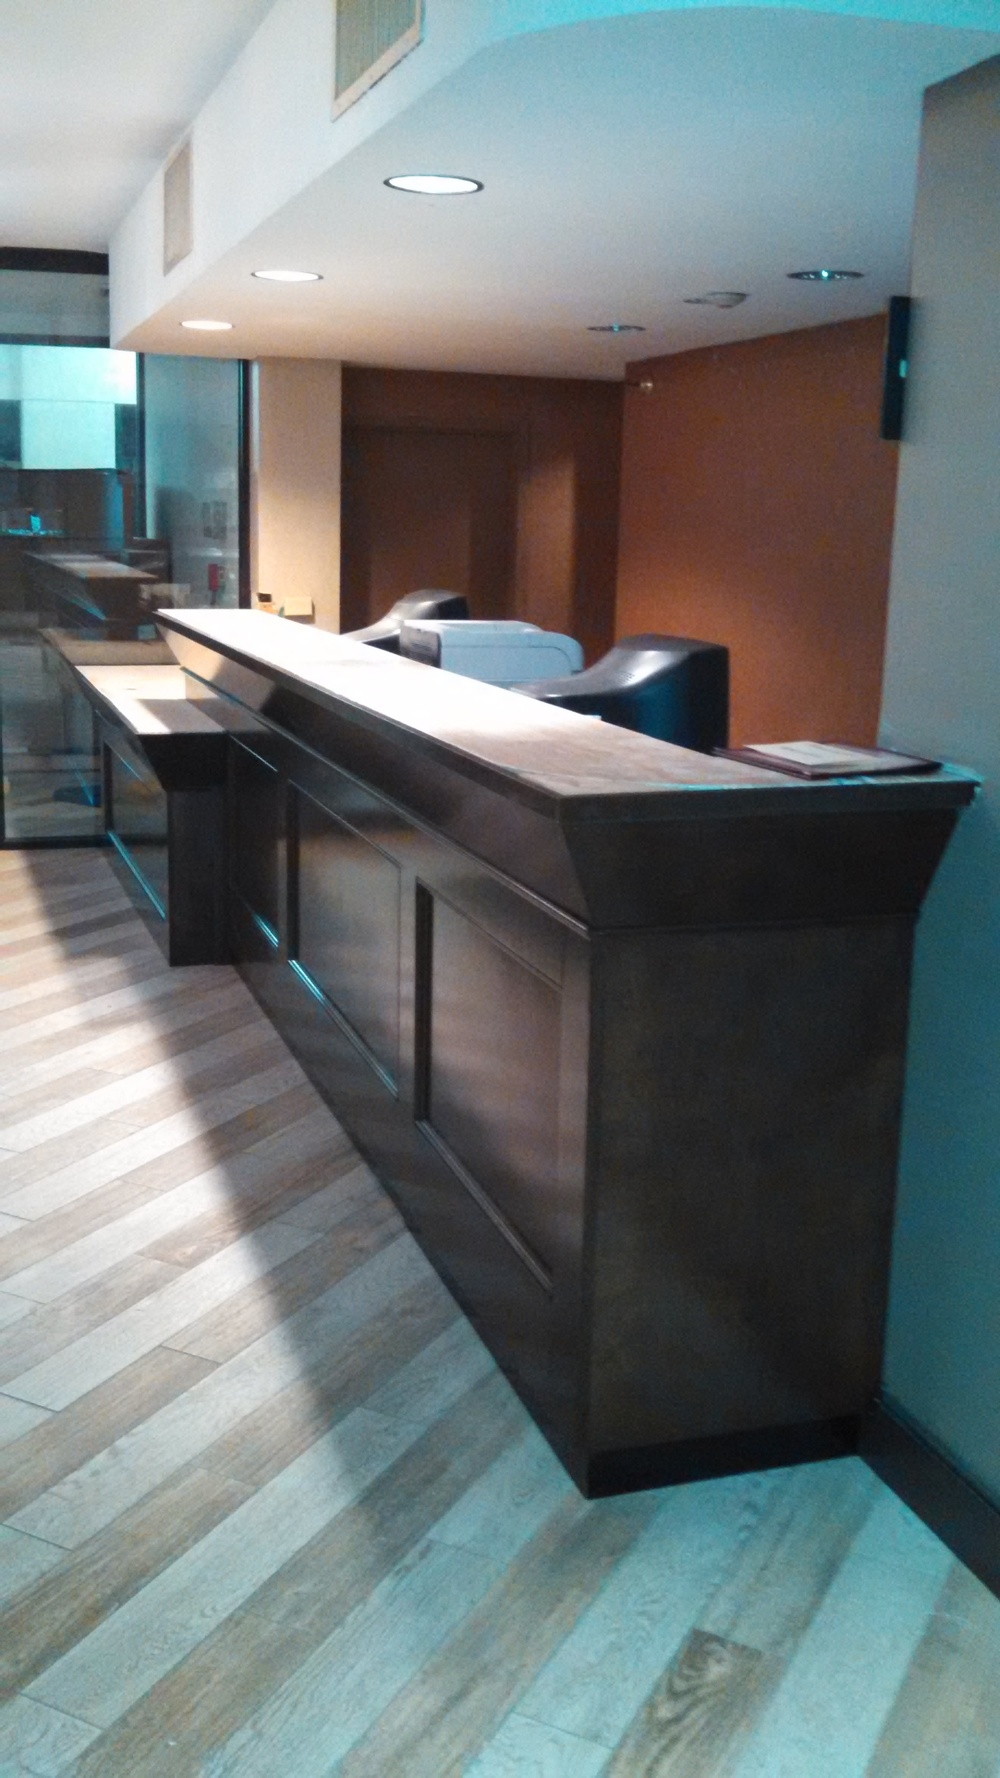 finish job reception counter best western 007.jpg